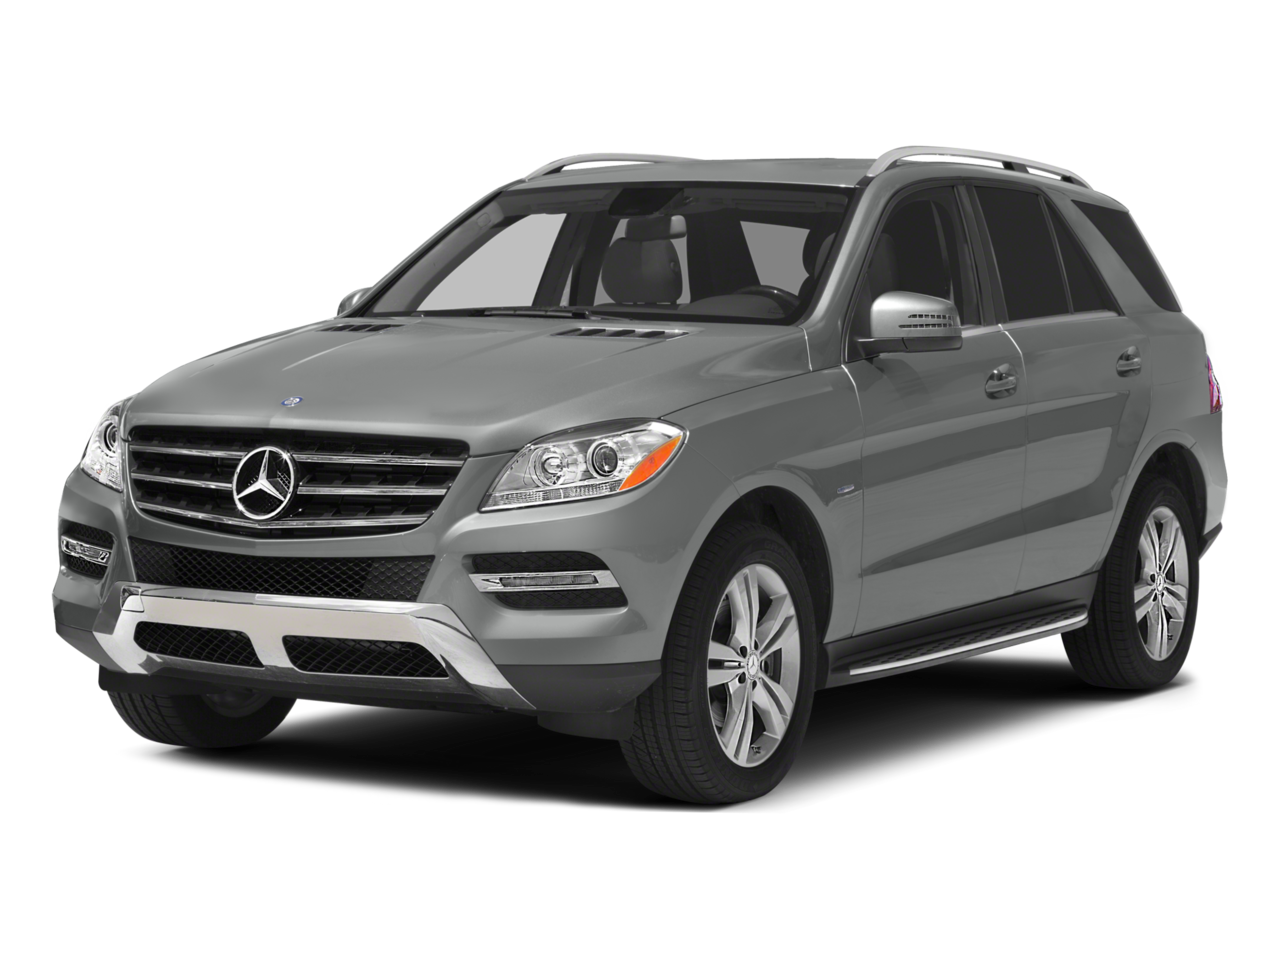 Buyer's Guide: 2015 Mercedes-Benz M-Class